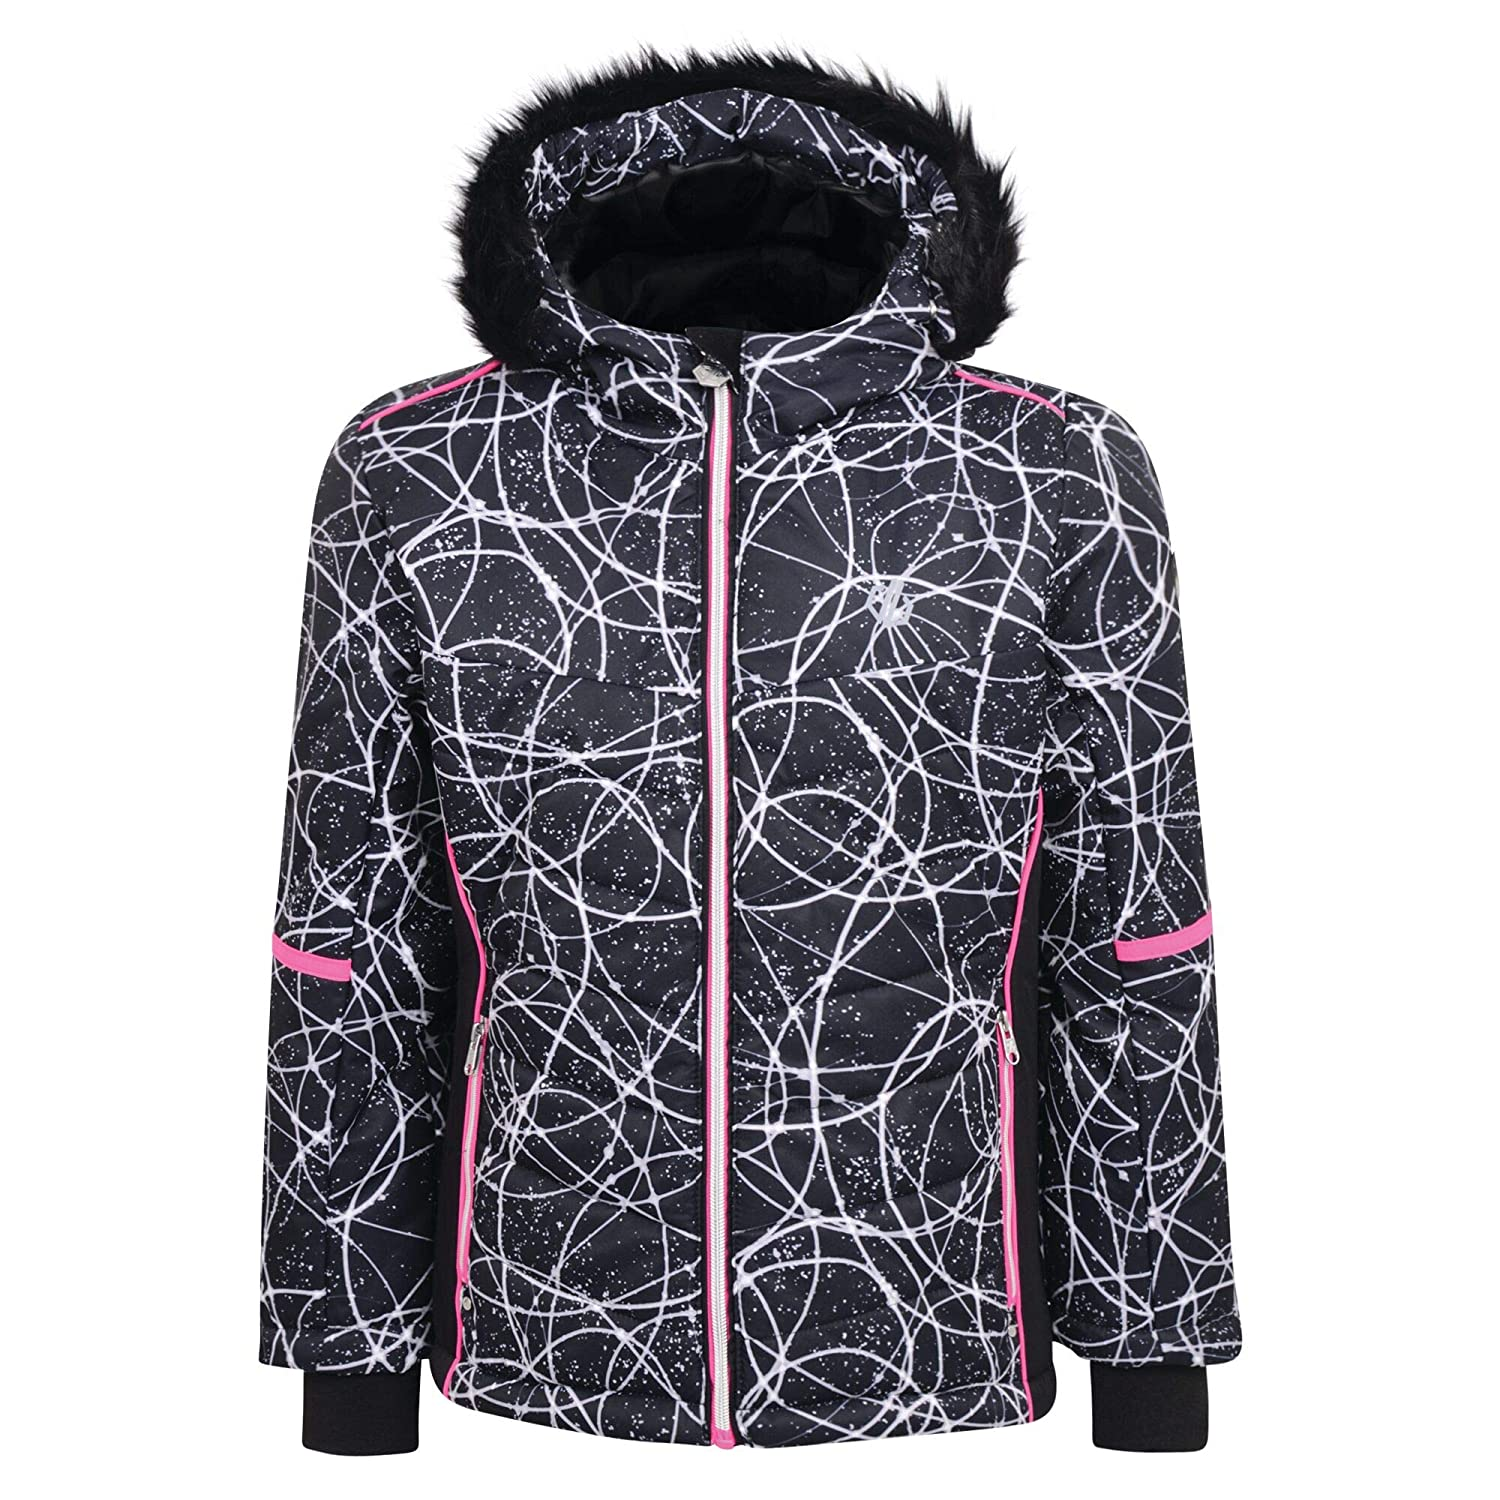 Dare 2b Girls Elusive Waterproof and Breathable High Loft Insulated Ski and Snowboard Jacket With Faux Fur Hood and Snowskirt